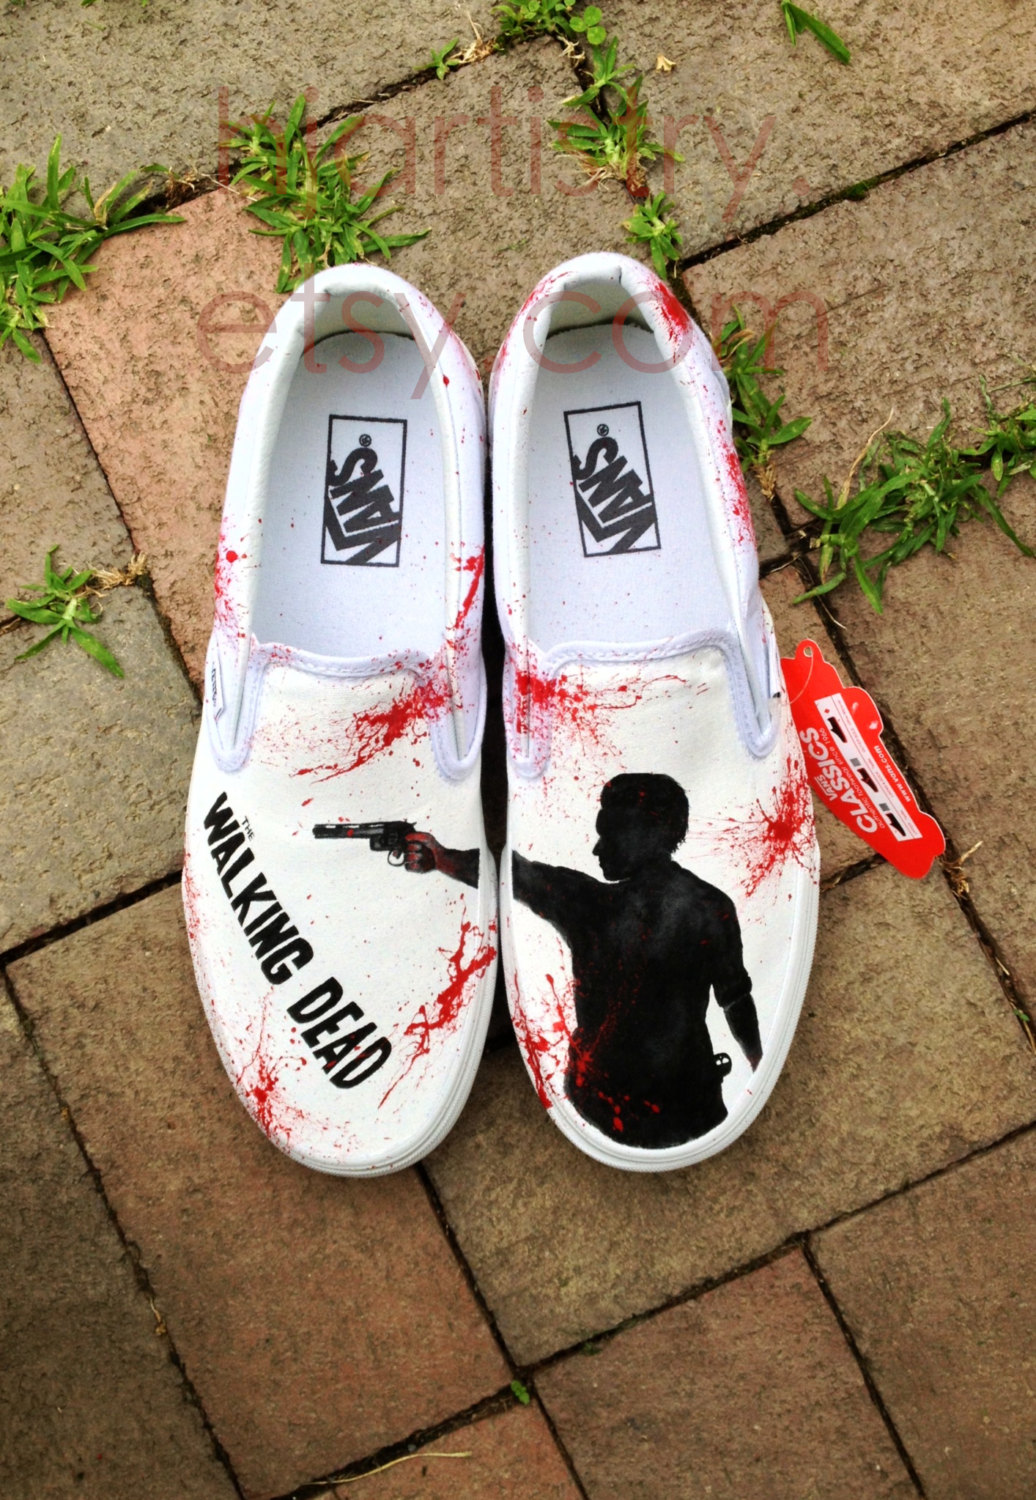 Walking dead converse shoes for sale - Walking Dead Shoes Sheriff Rick Grimes Daryl Dixon Twd Shoes Walkind Dead Hand Painted Shoes